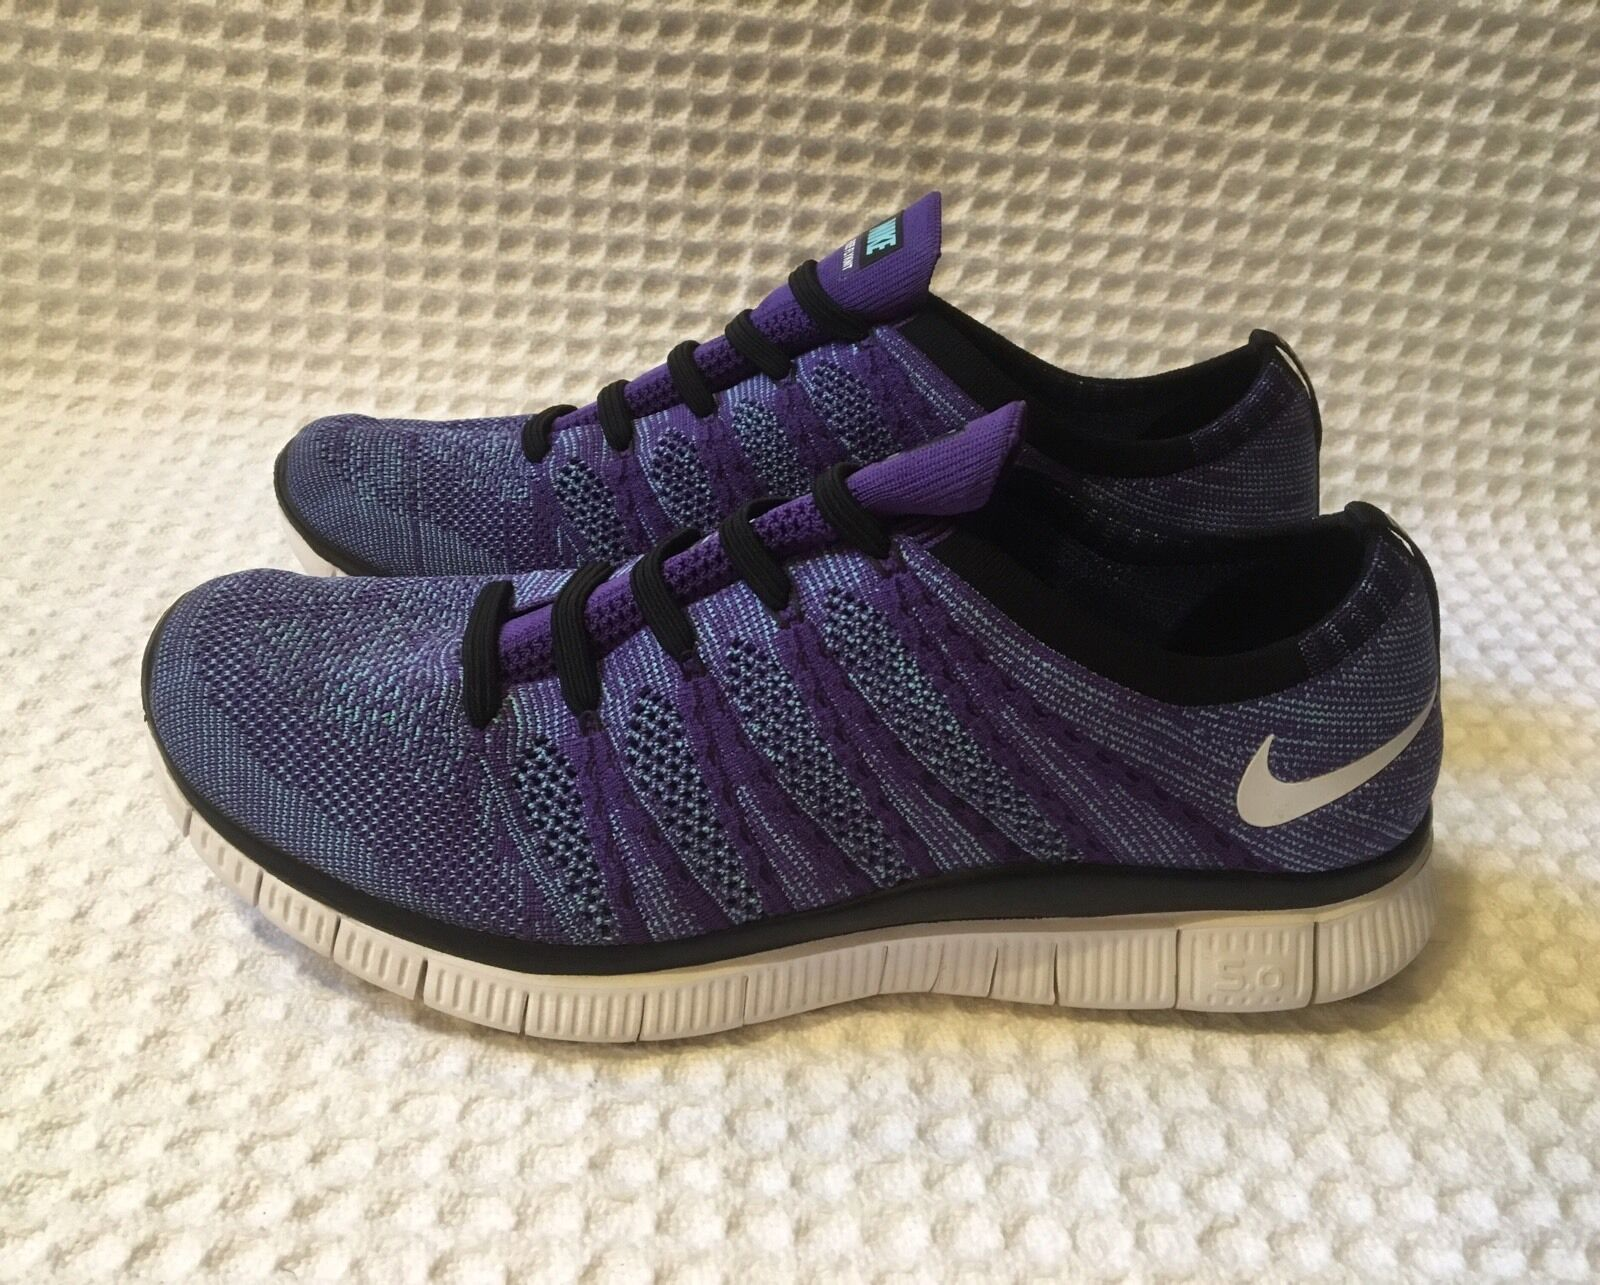 4be68fec1dd5 NIKE 599459 Free Flyknit NSW 5.0 Sneakers Running Shoes Shoes Shoes  130  Blue   Purple 11.5 4d1d94